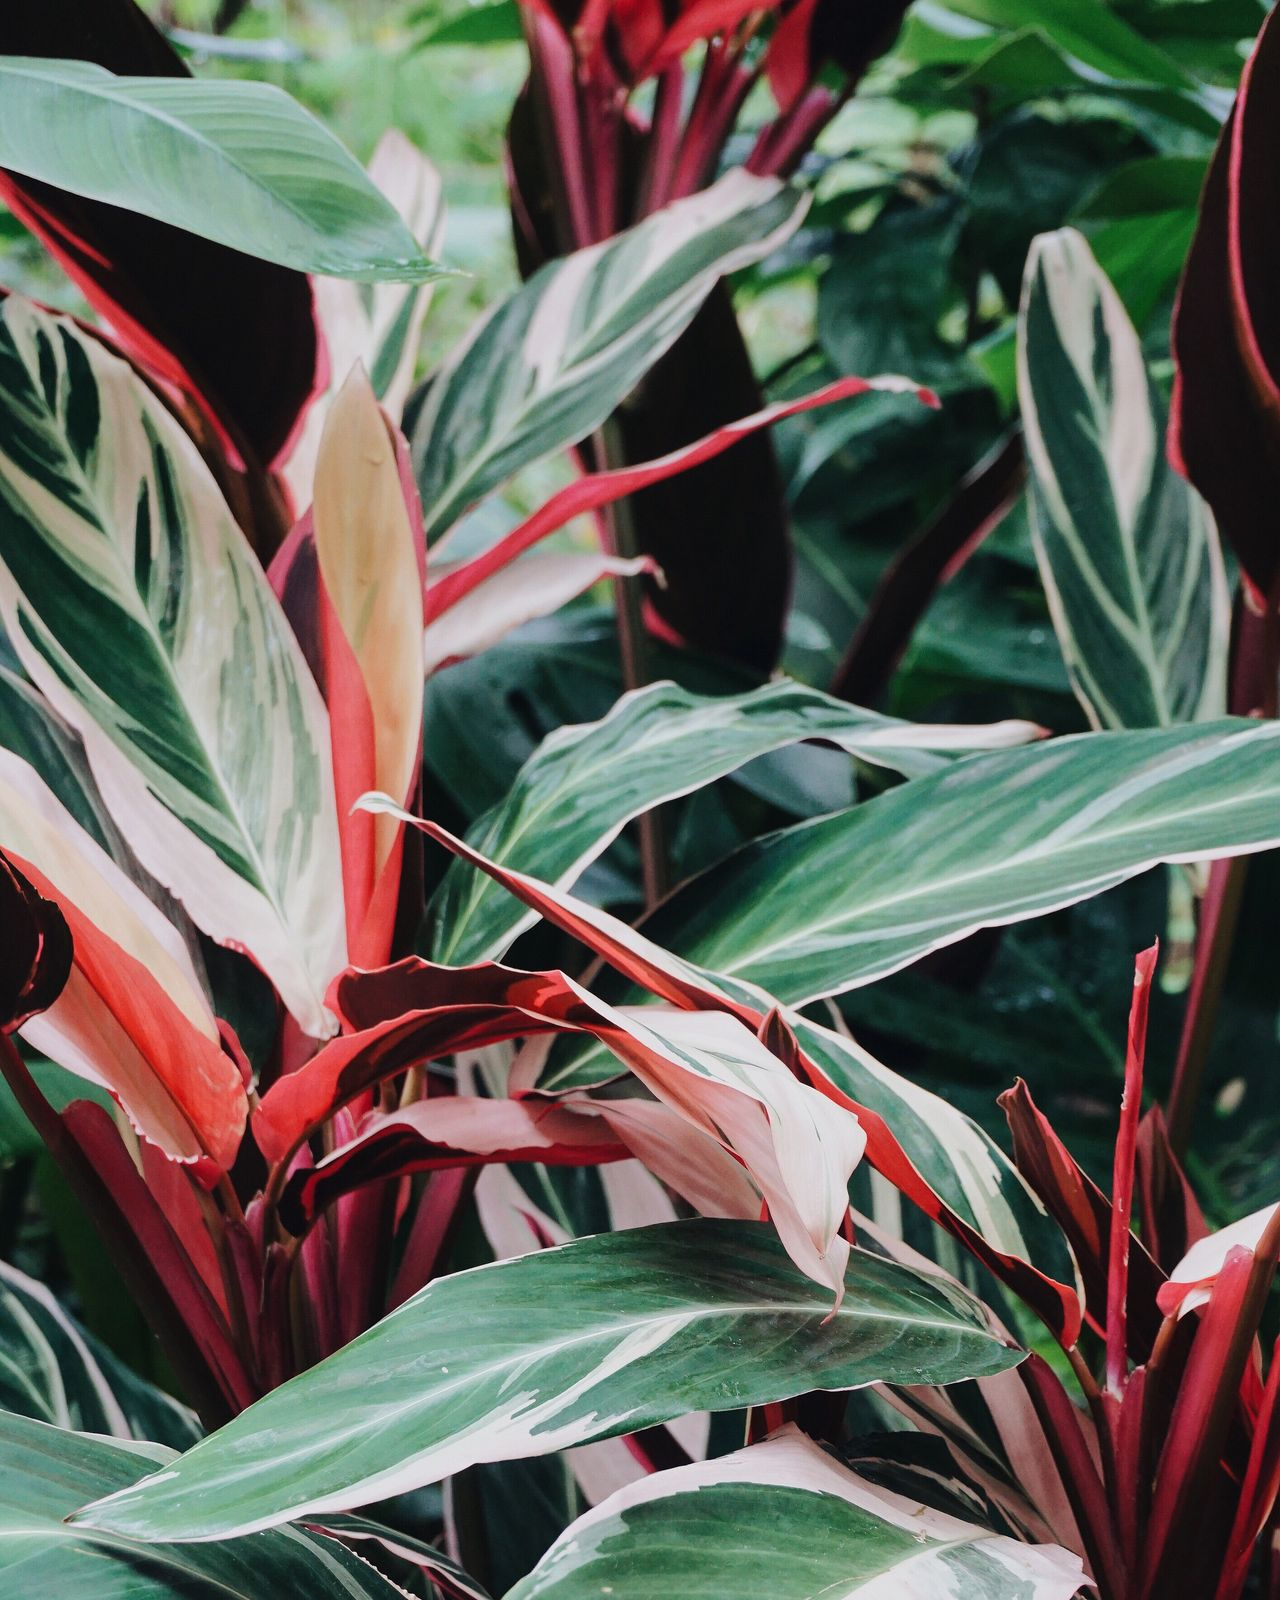 Colour Palette Eyeemphoto Plants And Flowers Plant Life Plant Green Pink Edenproject Palm Trees Garden Plant Photography Plants Collection England